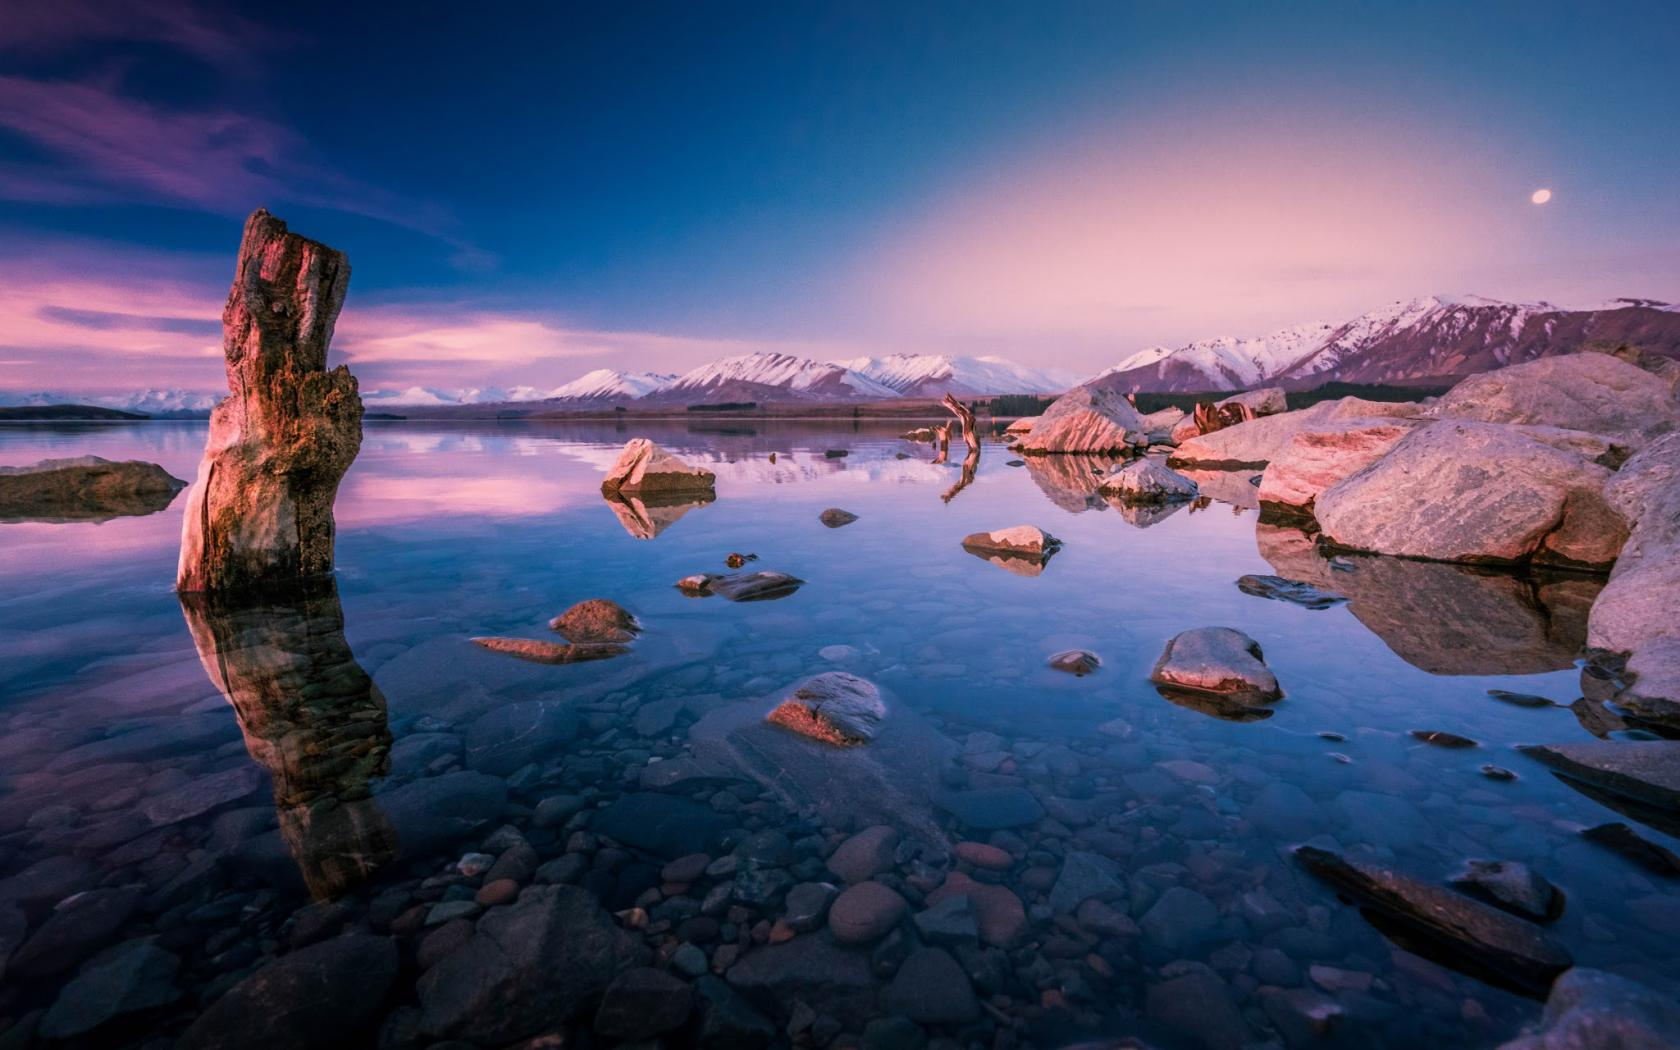 Evening Wallpaper With Quotes Evening Sunset Over Lake Tekapo New Zealand For Desktop